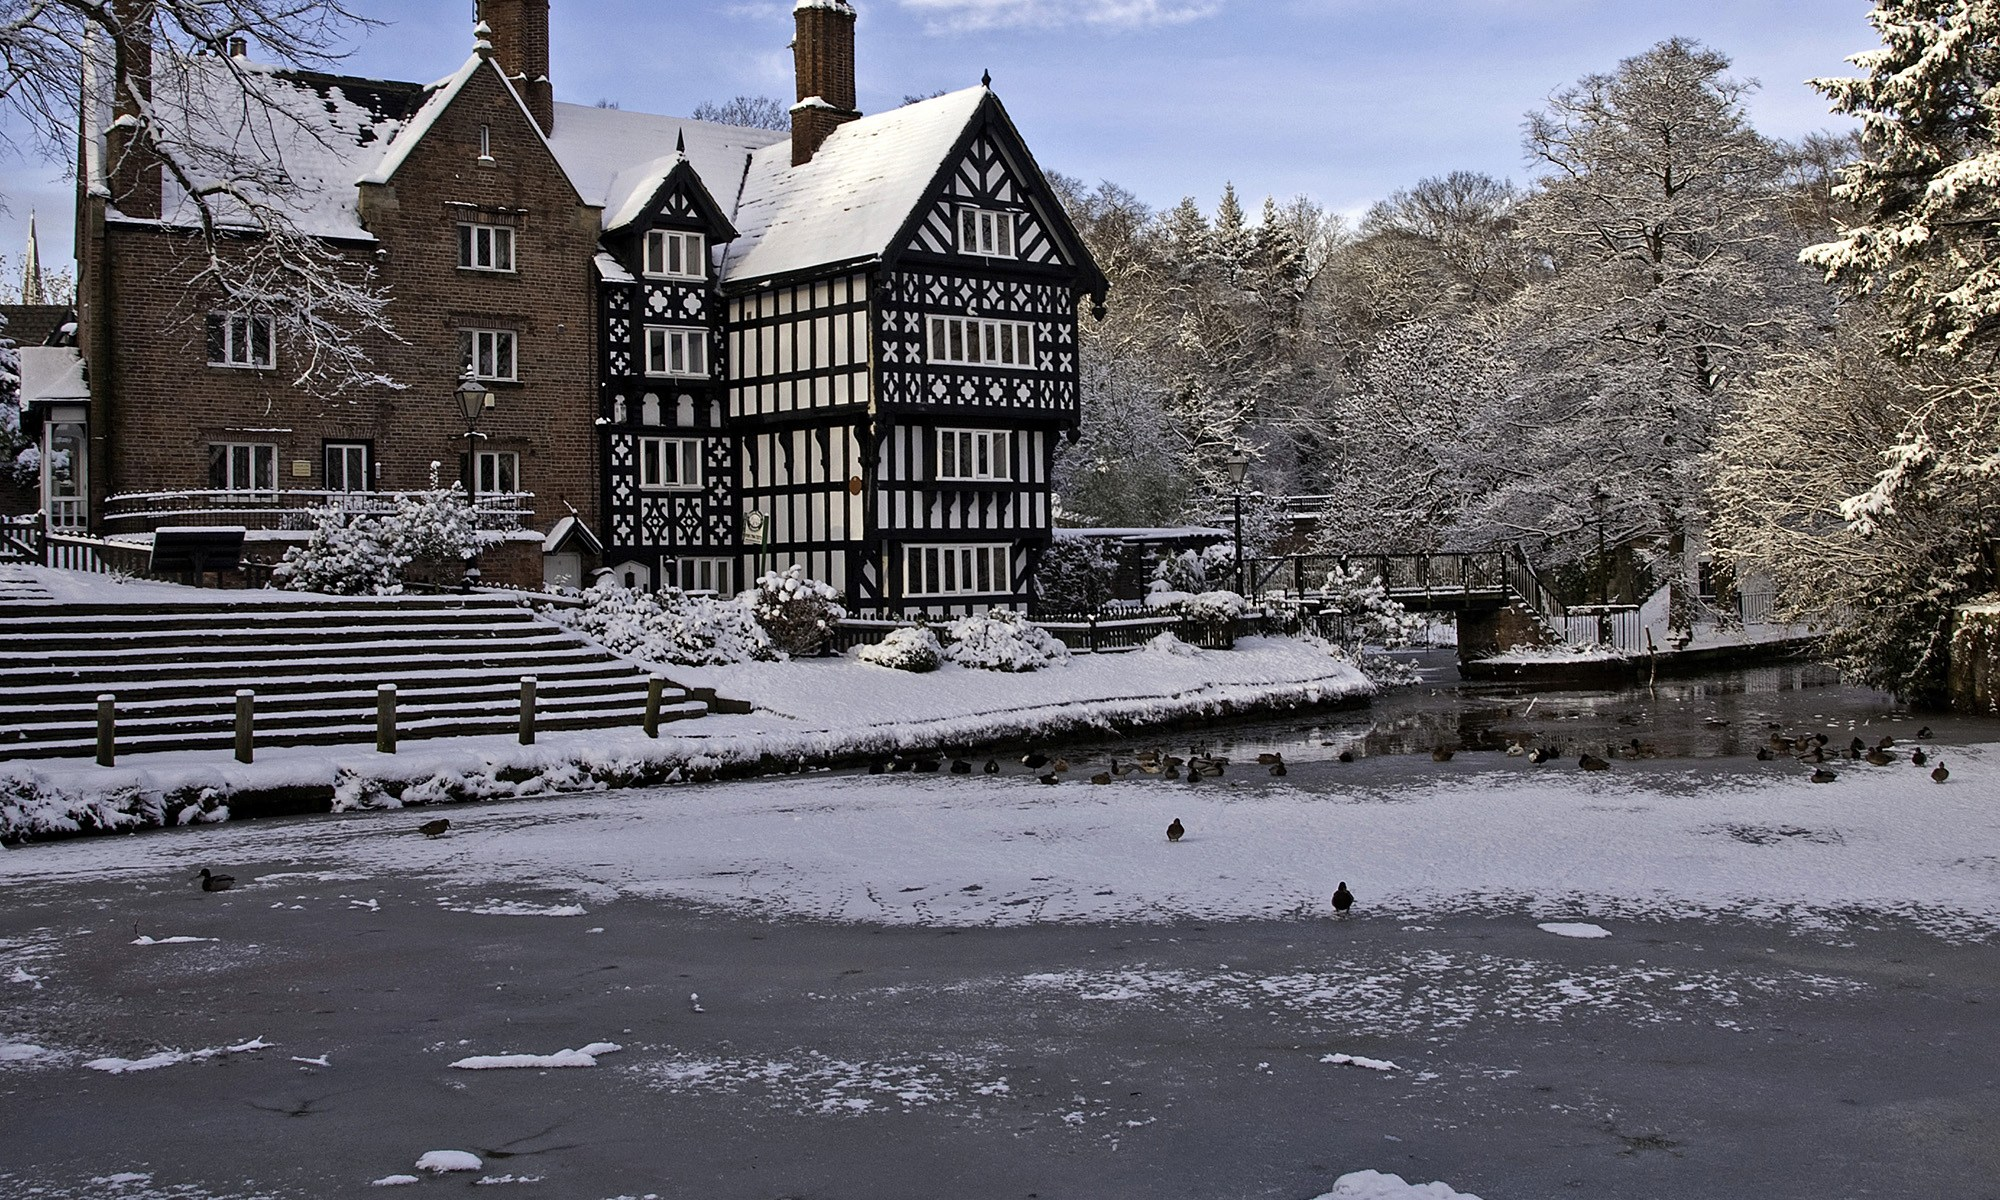 The Packet House at Worsley in Snow